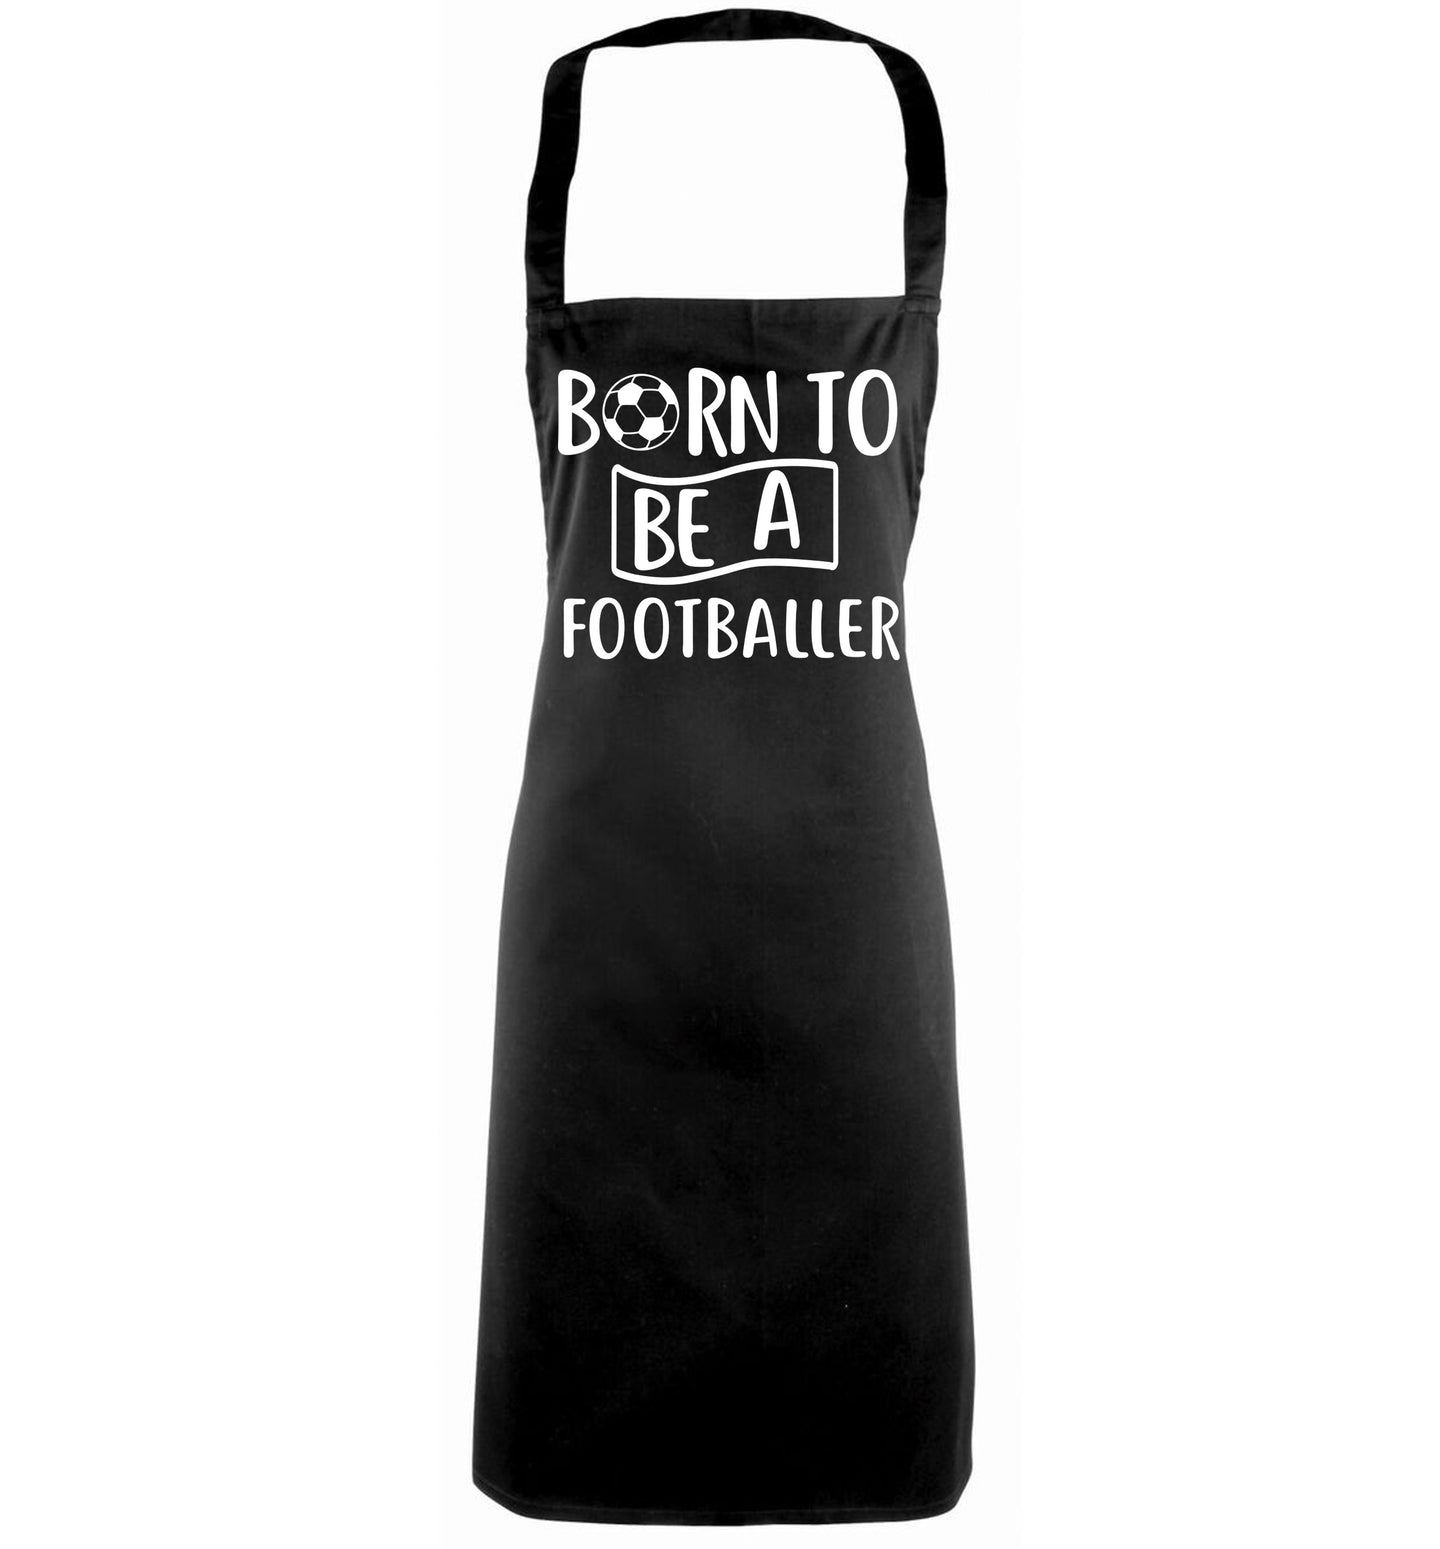 Born to be a footballer black apron